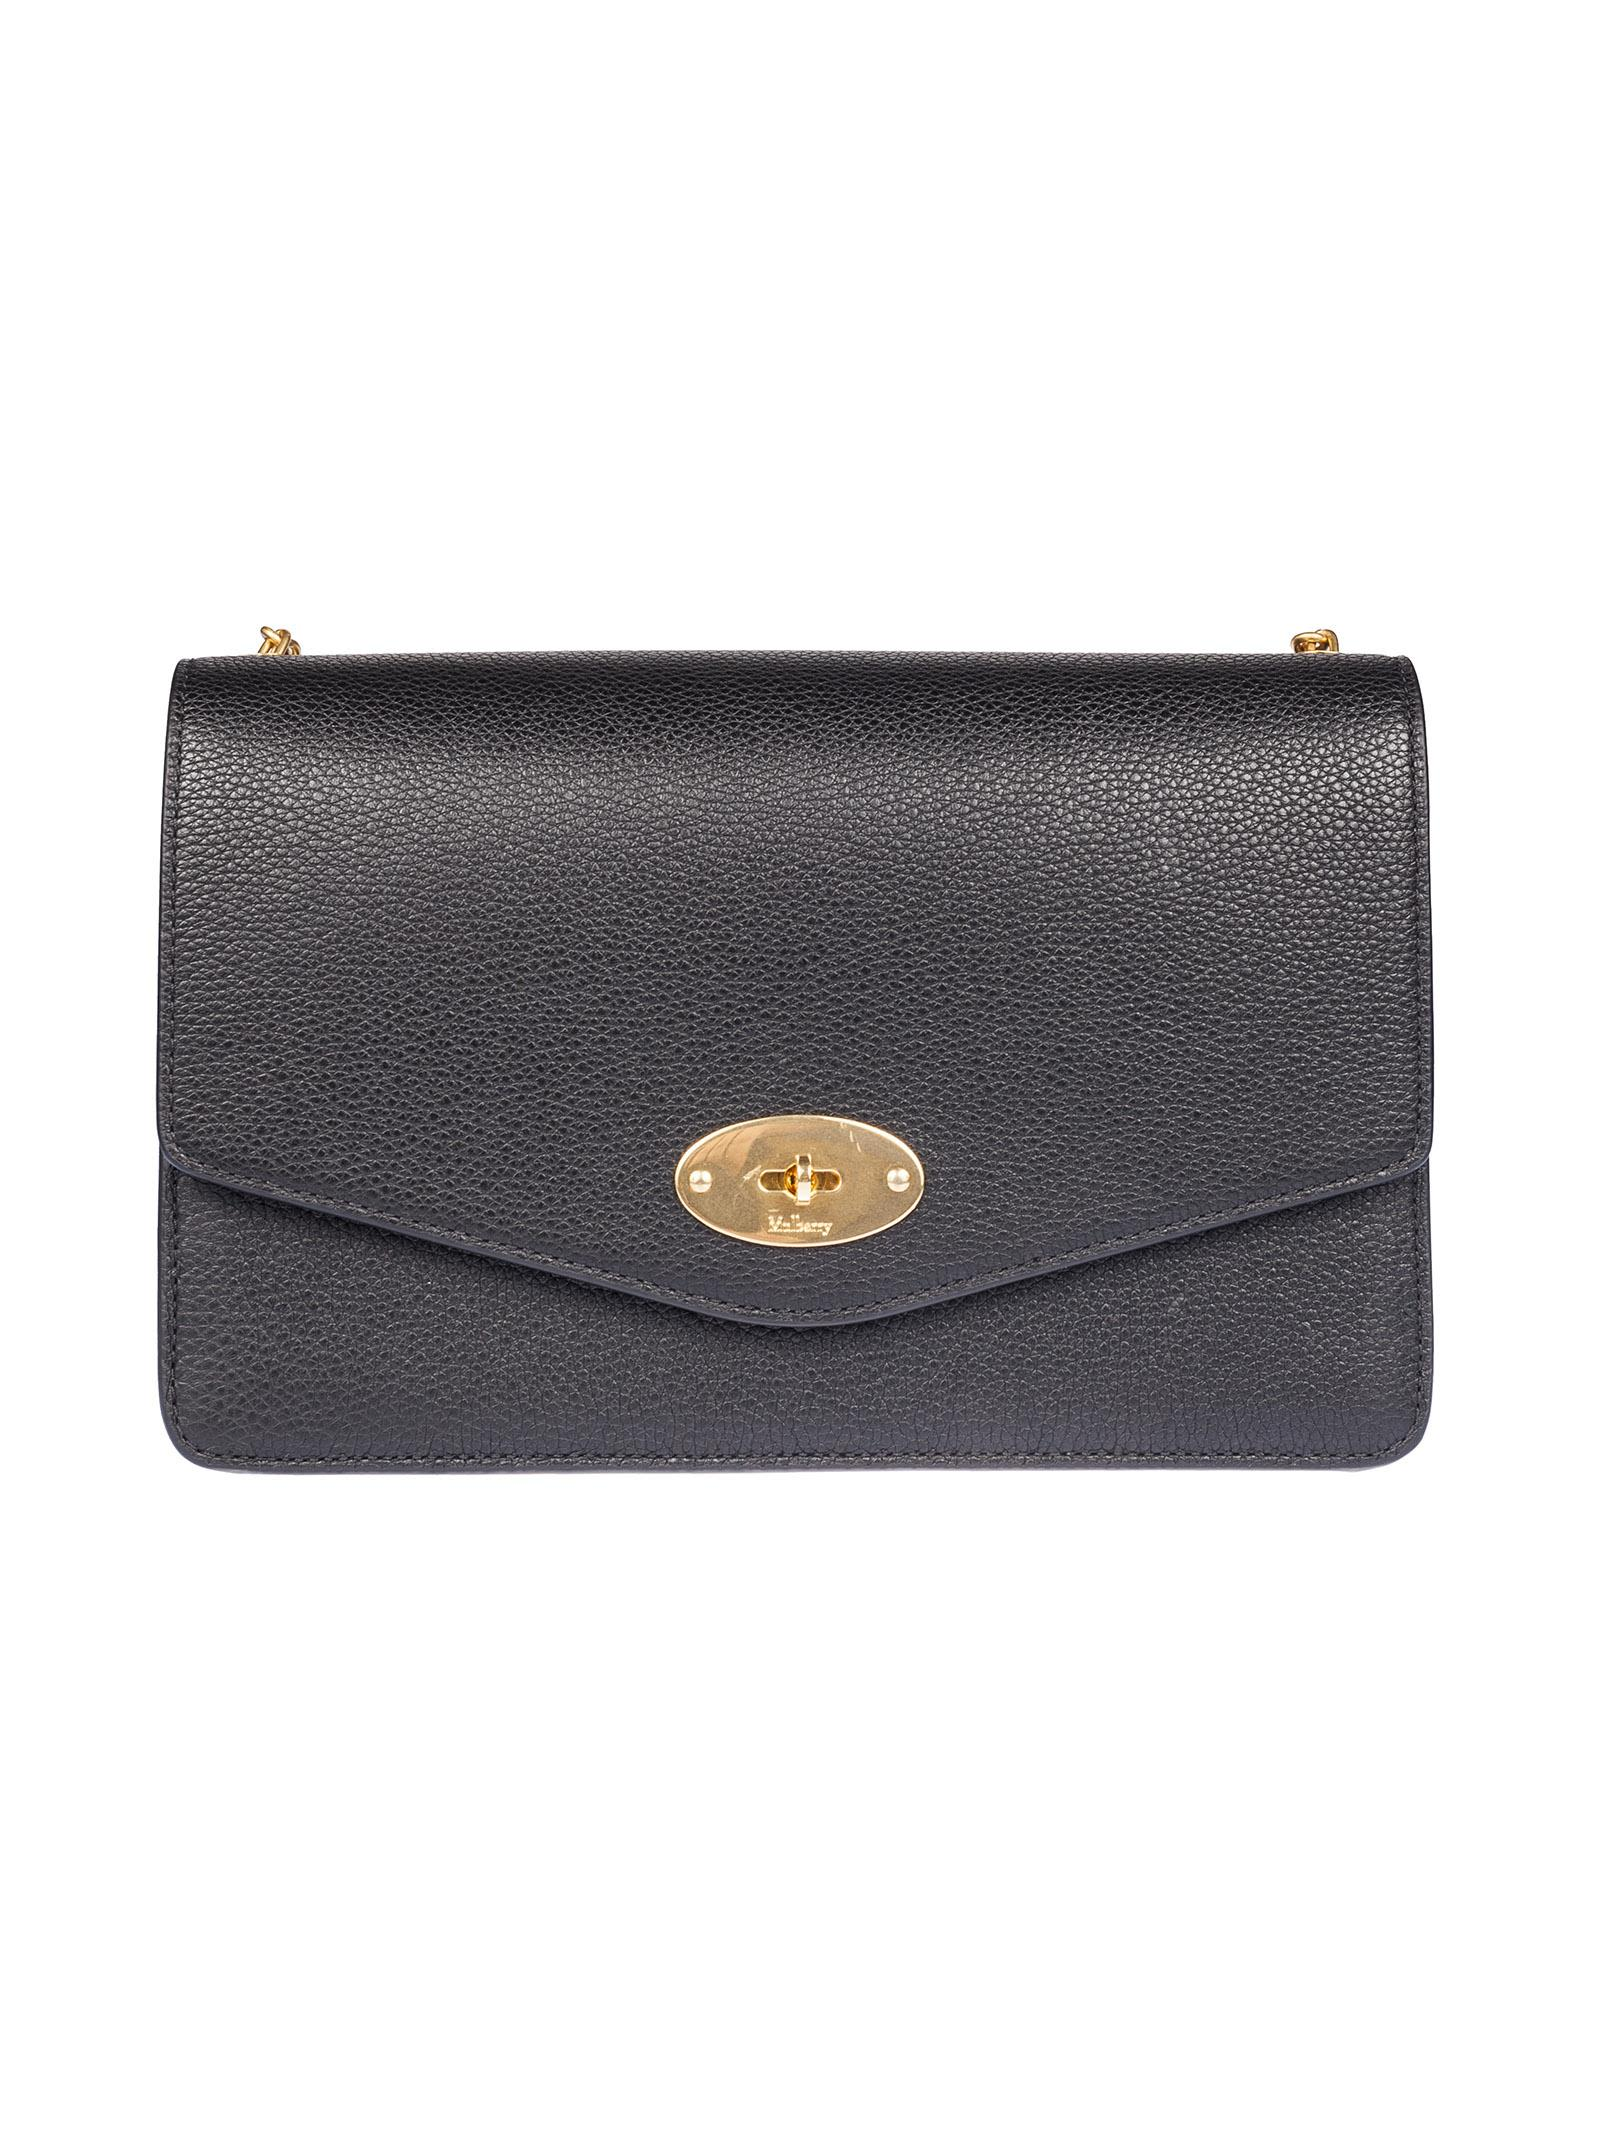 LARGE POSTMANS LOCK CALFSKIN LEATHER CROSSBODY CLUTCH - BLACK